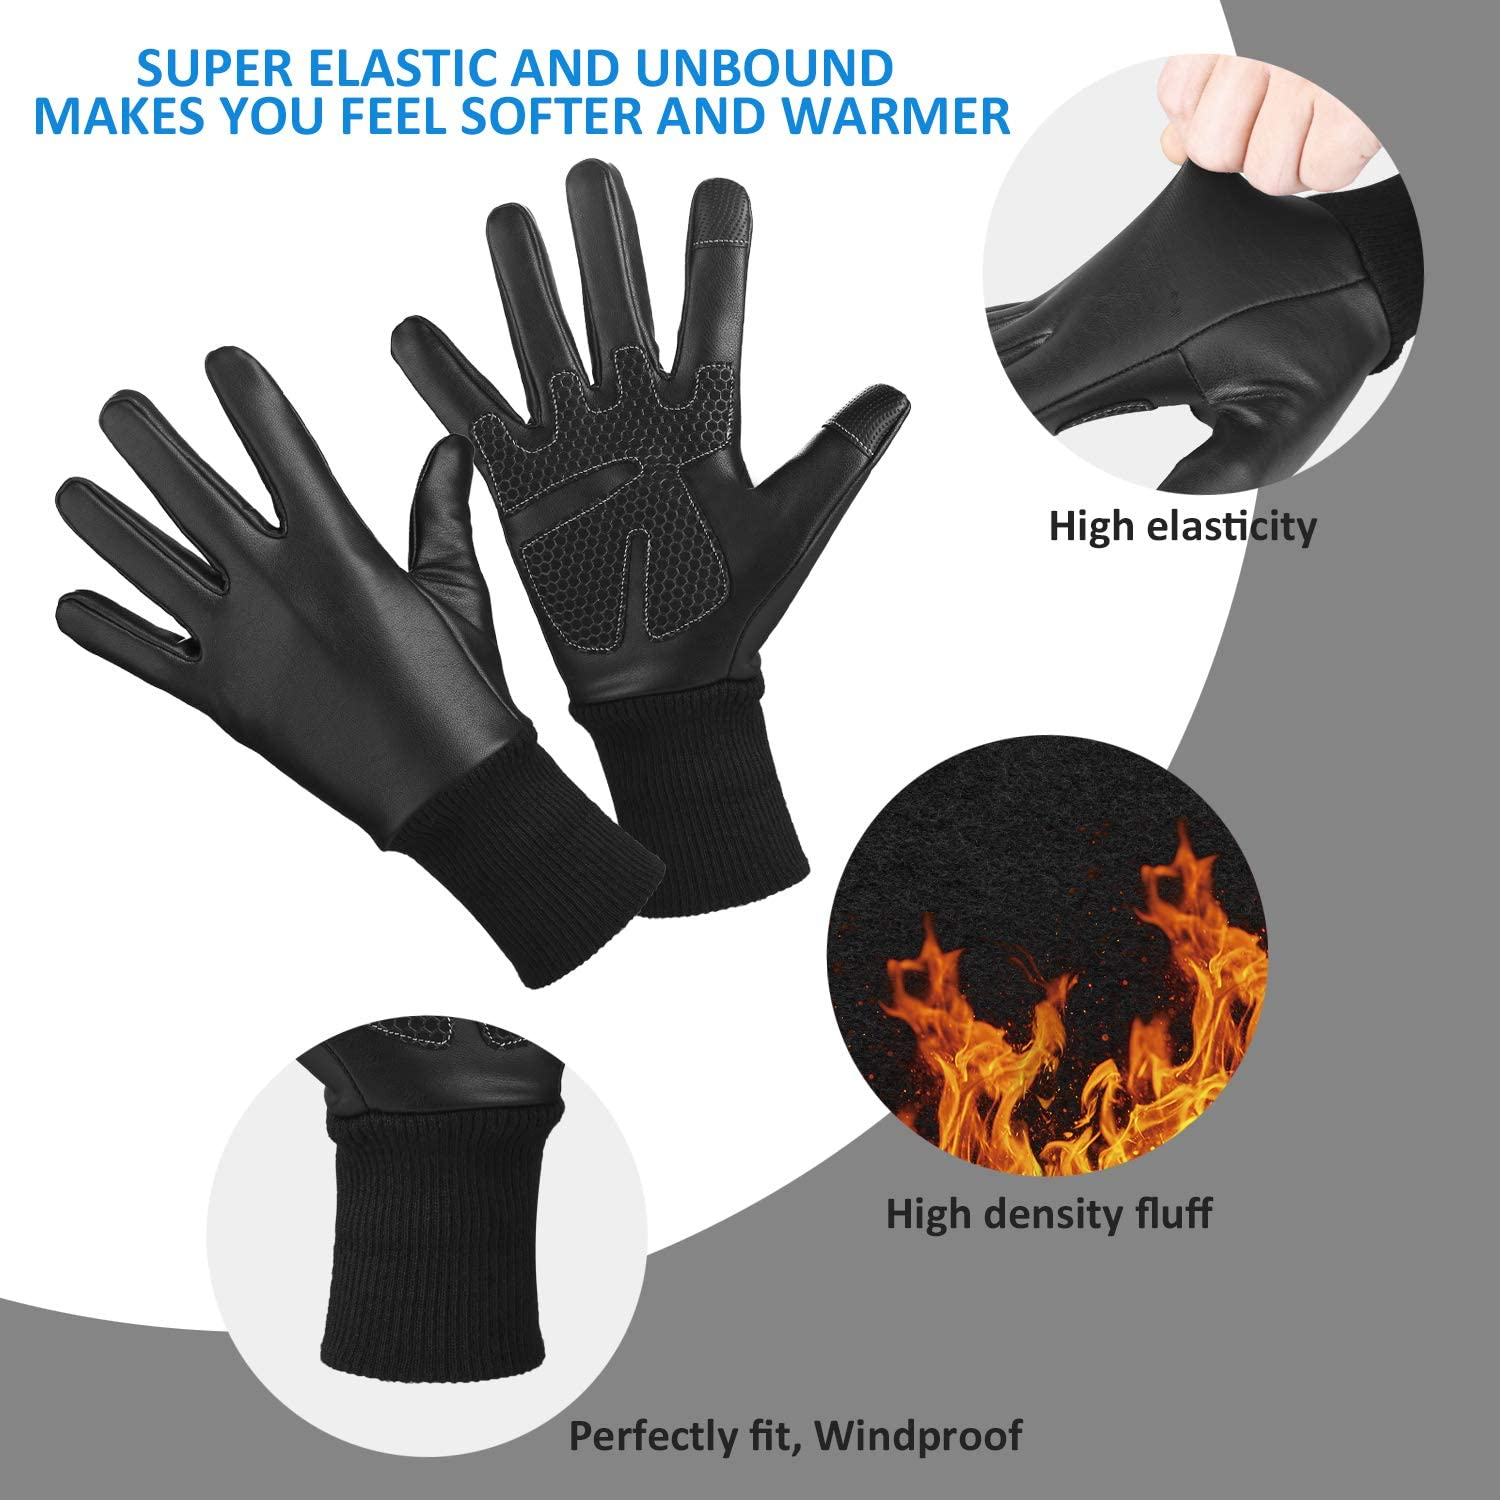 Winter Outdoor Windproof Thermal Work Running D Giwil Waterproof Cycling Gloves